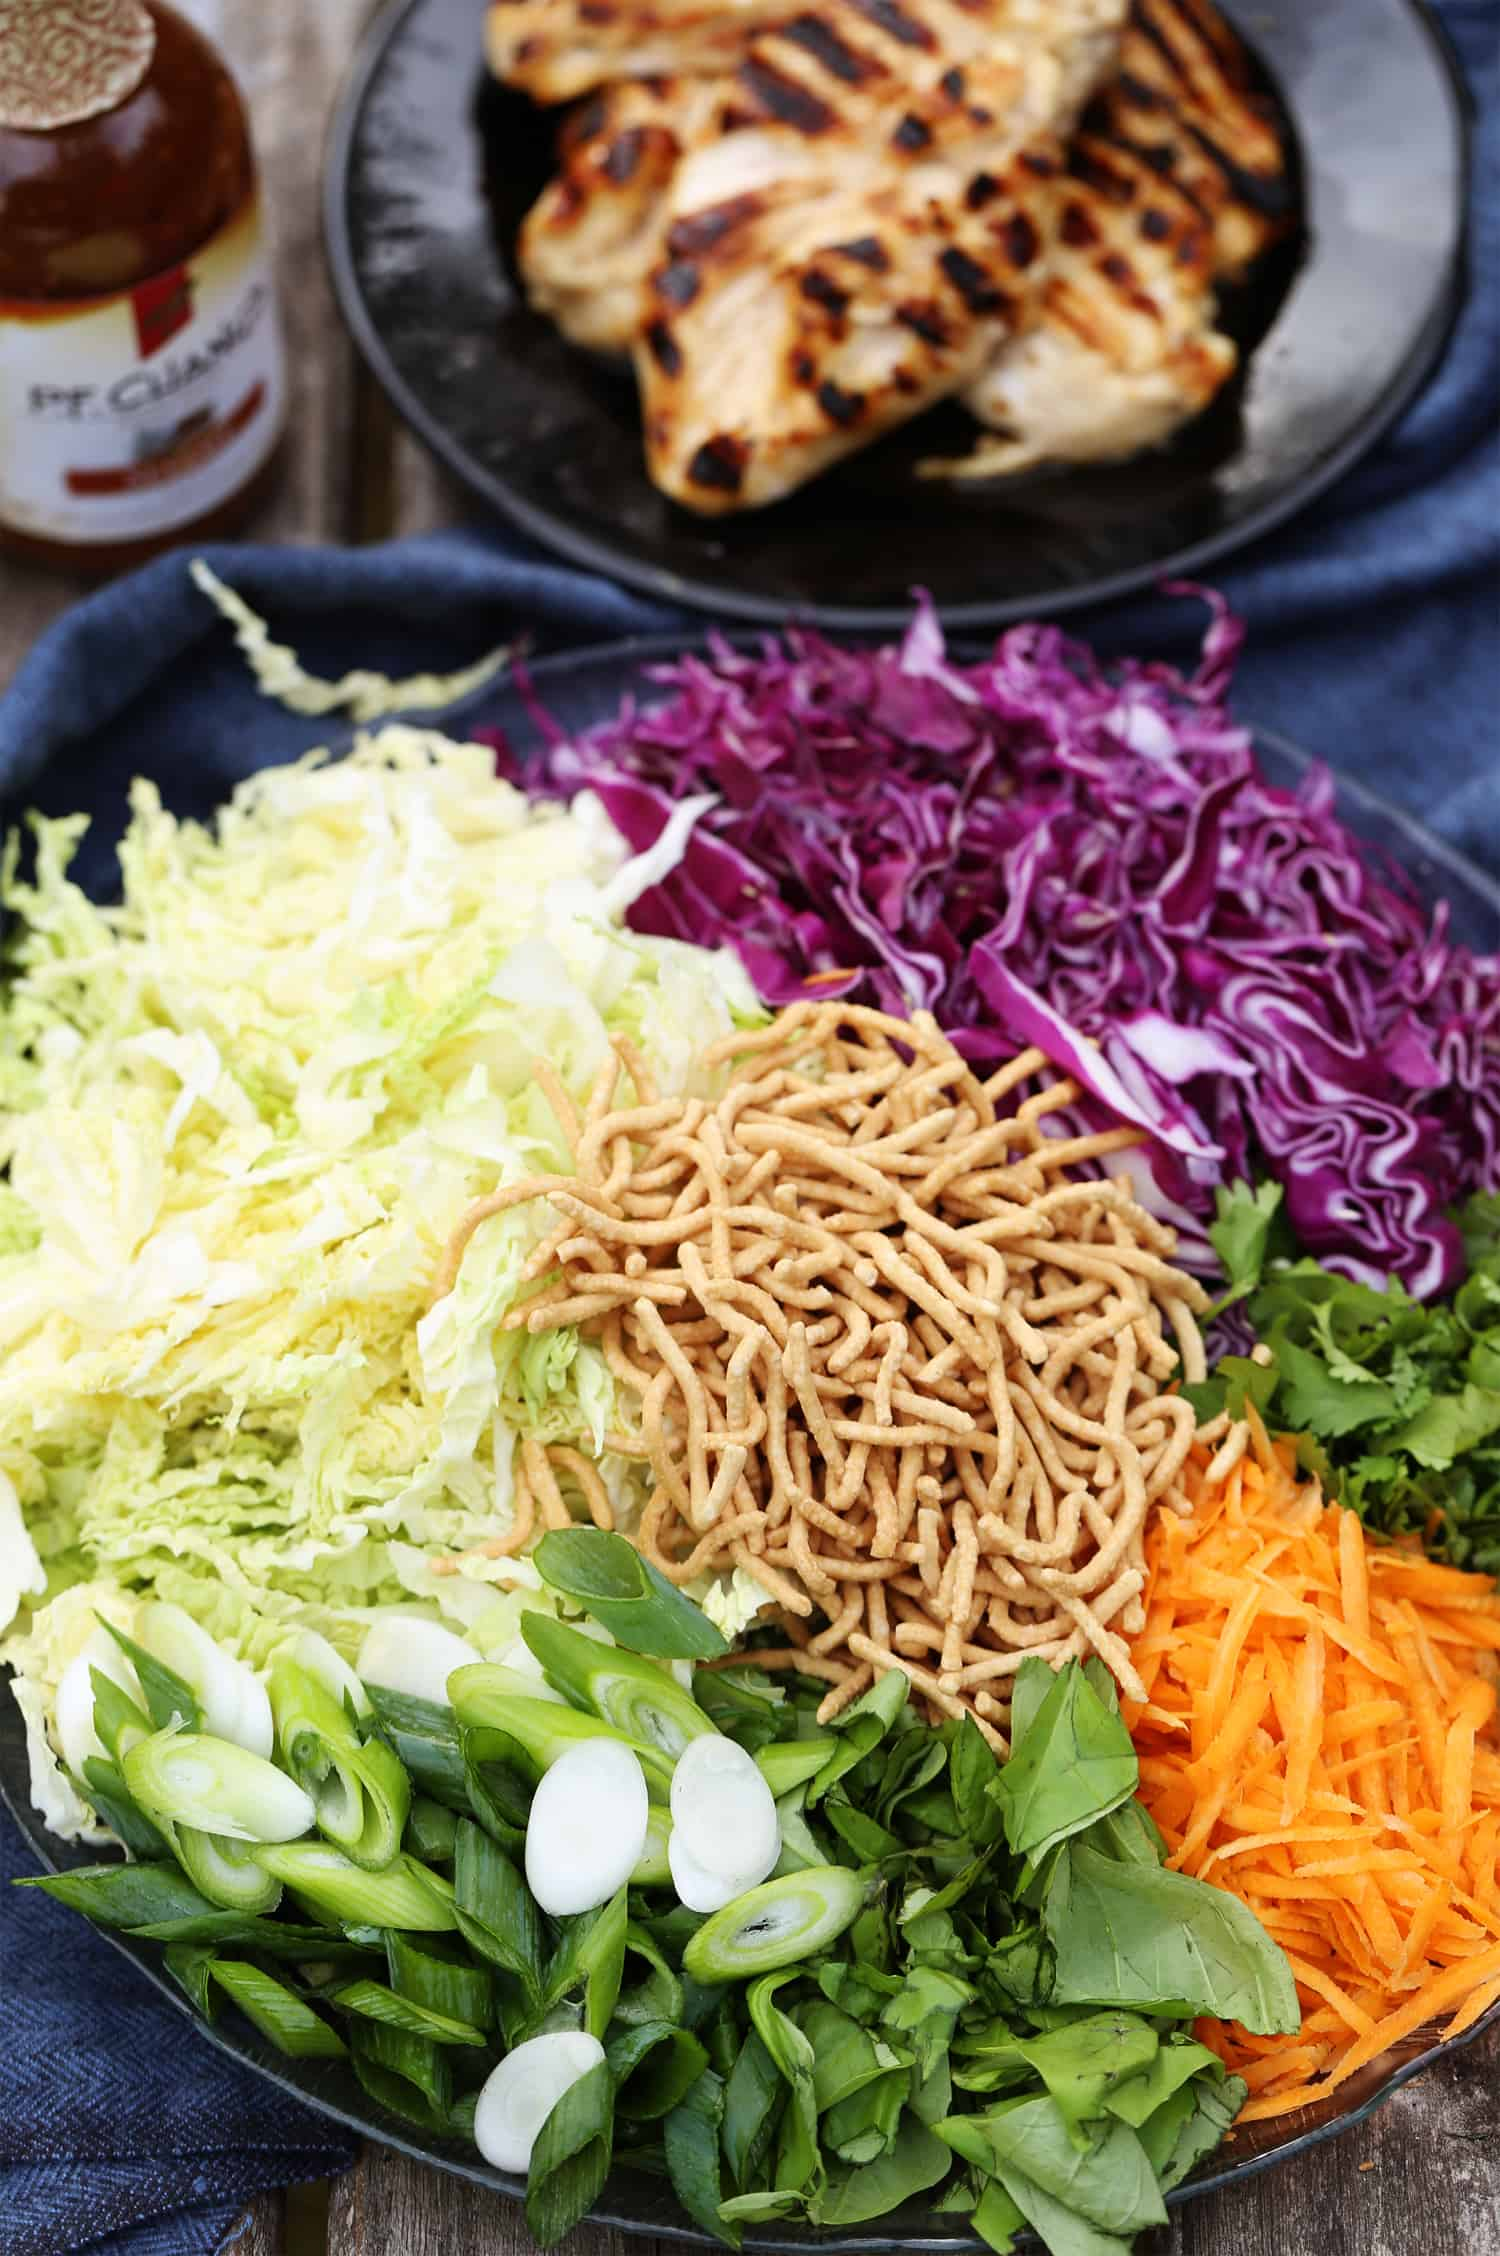 Easy Make Ahead Meal Grilled Sesame Chicken Salad Chinese chicken salad recipe #grillingmadesimple #ad #collectivebias